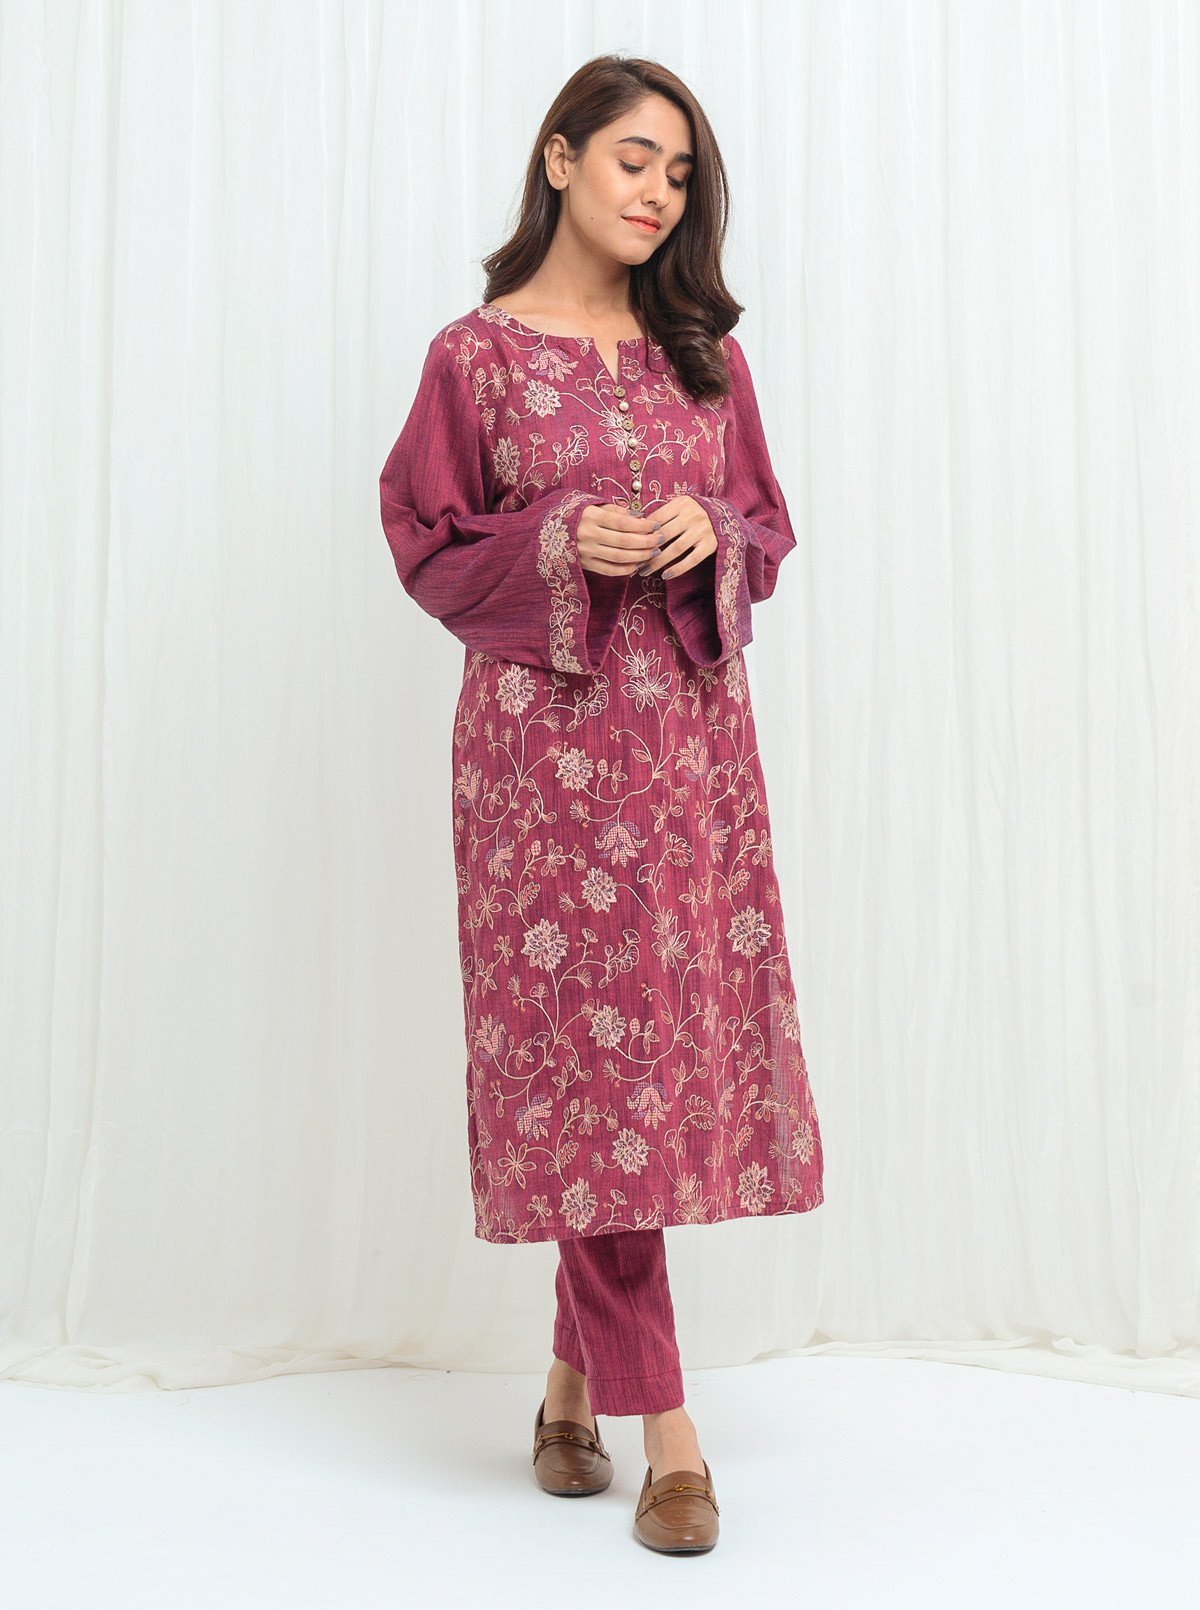 beechtree-traditional-wear-pakistan-clothing-winter-collection-affordable-online-shopping